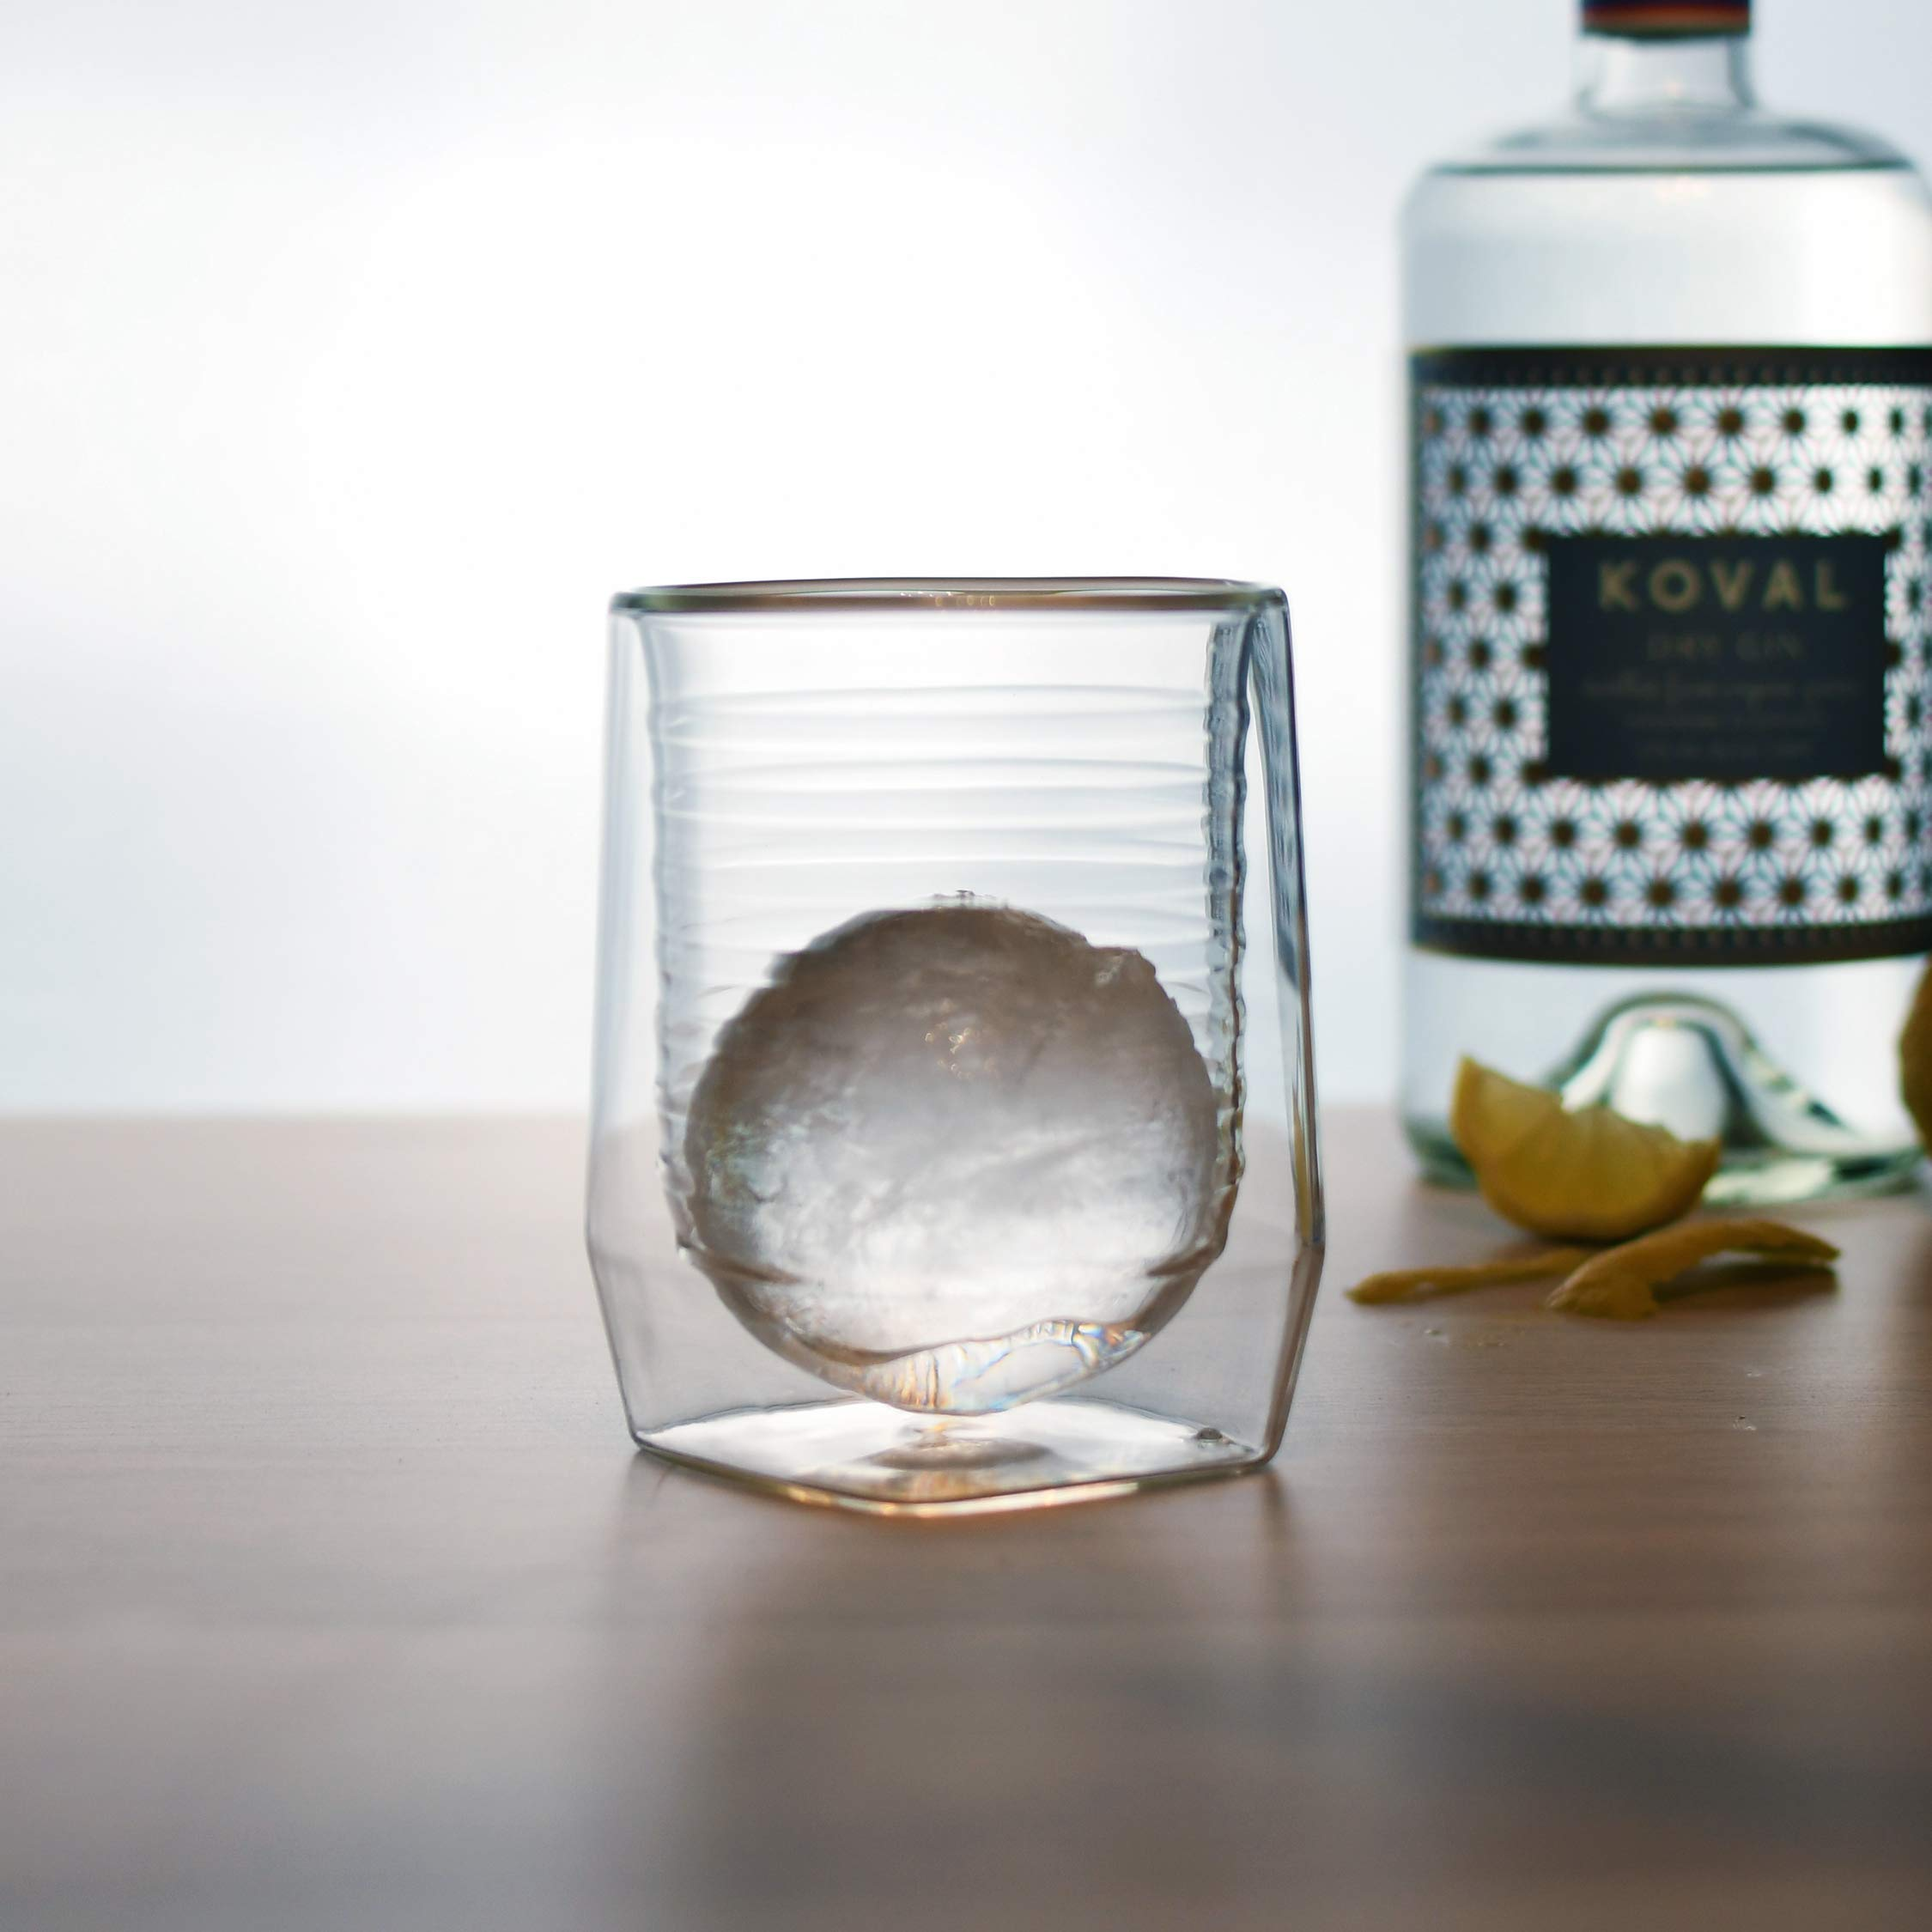 Aged & Ore - The Duo Glass | Hand Blown Double Walled Whiskey Glass Gift Set with Free Silicone Ice Molds | Integrated Measuring Lines for the Perfect Cocktail | Durable Modern Tumbler | Set of 4 by Aged & Ore (Image #8)